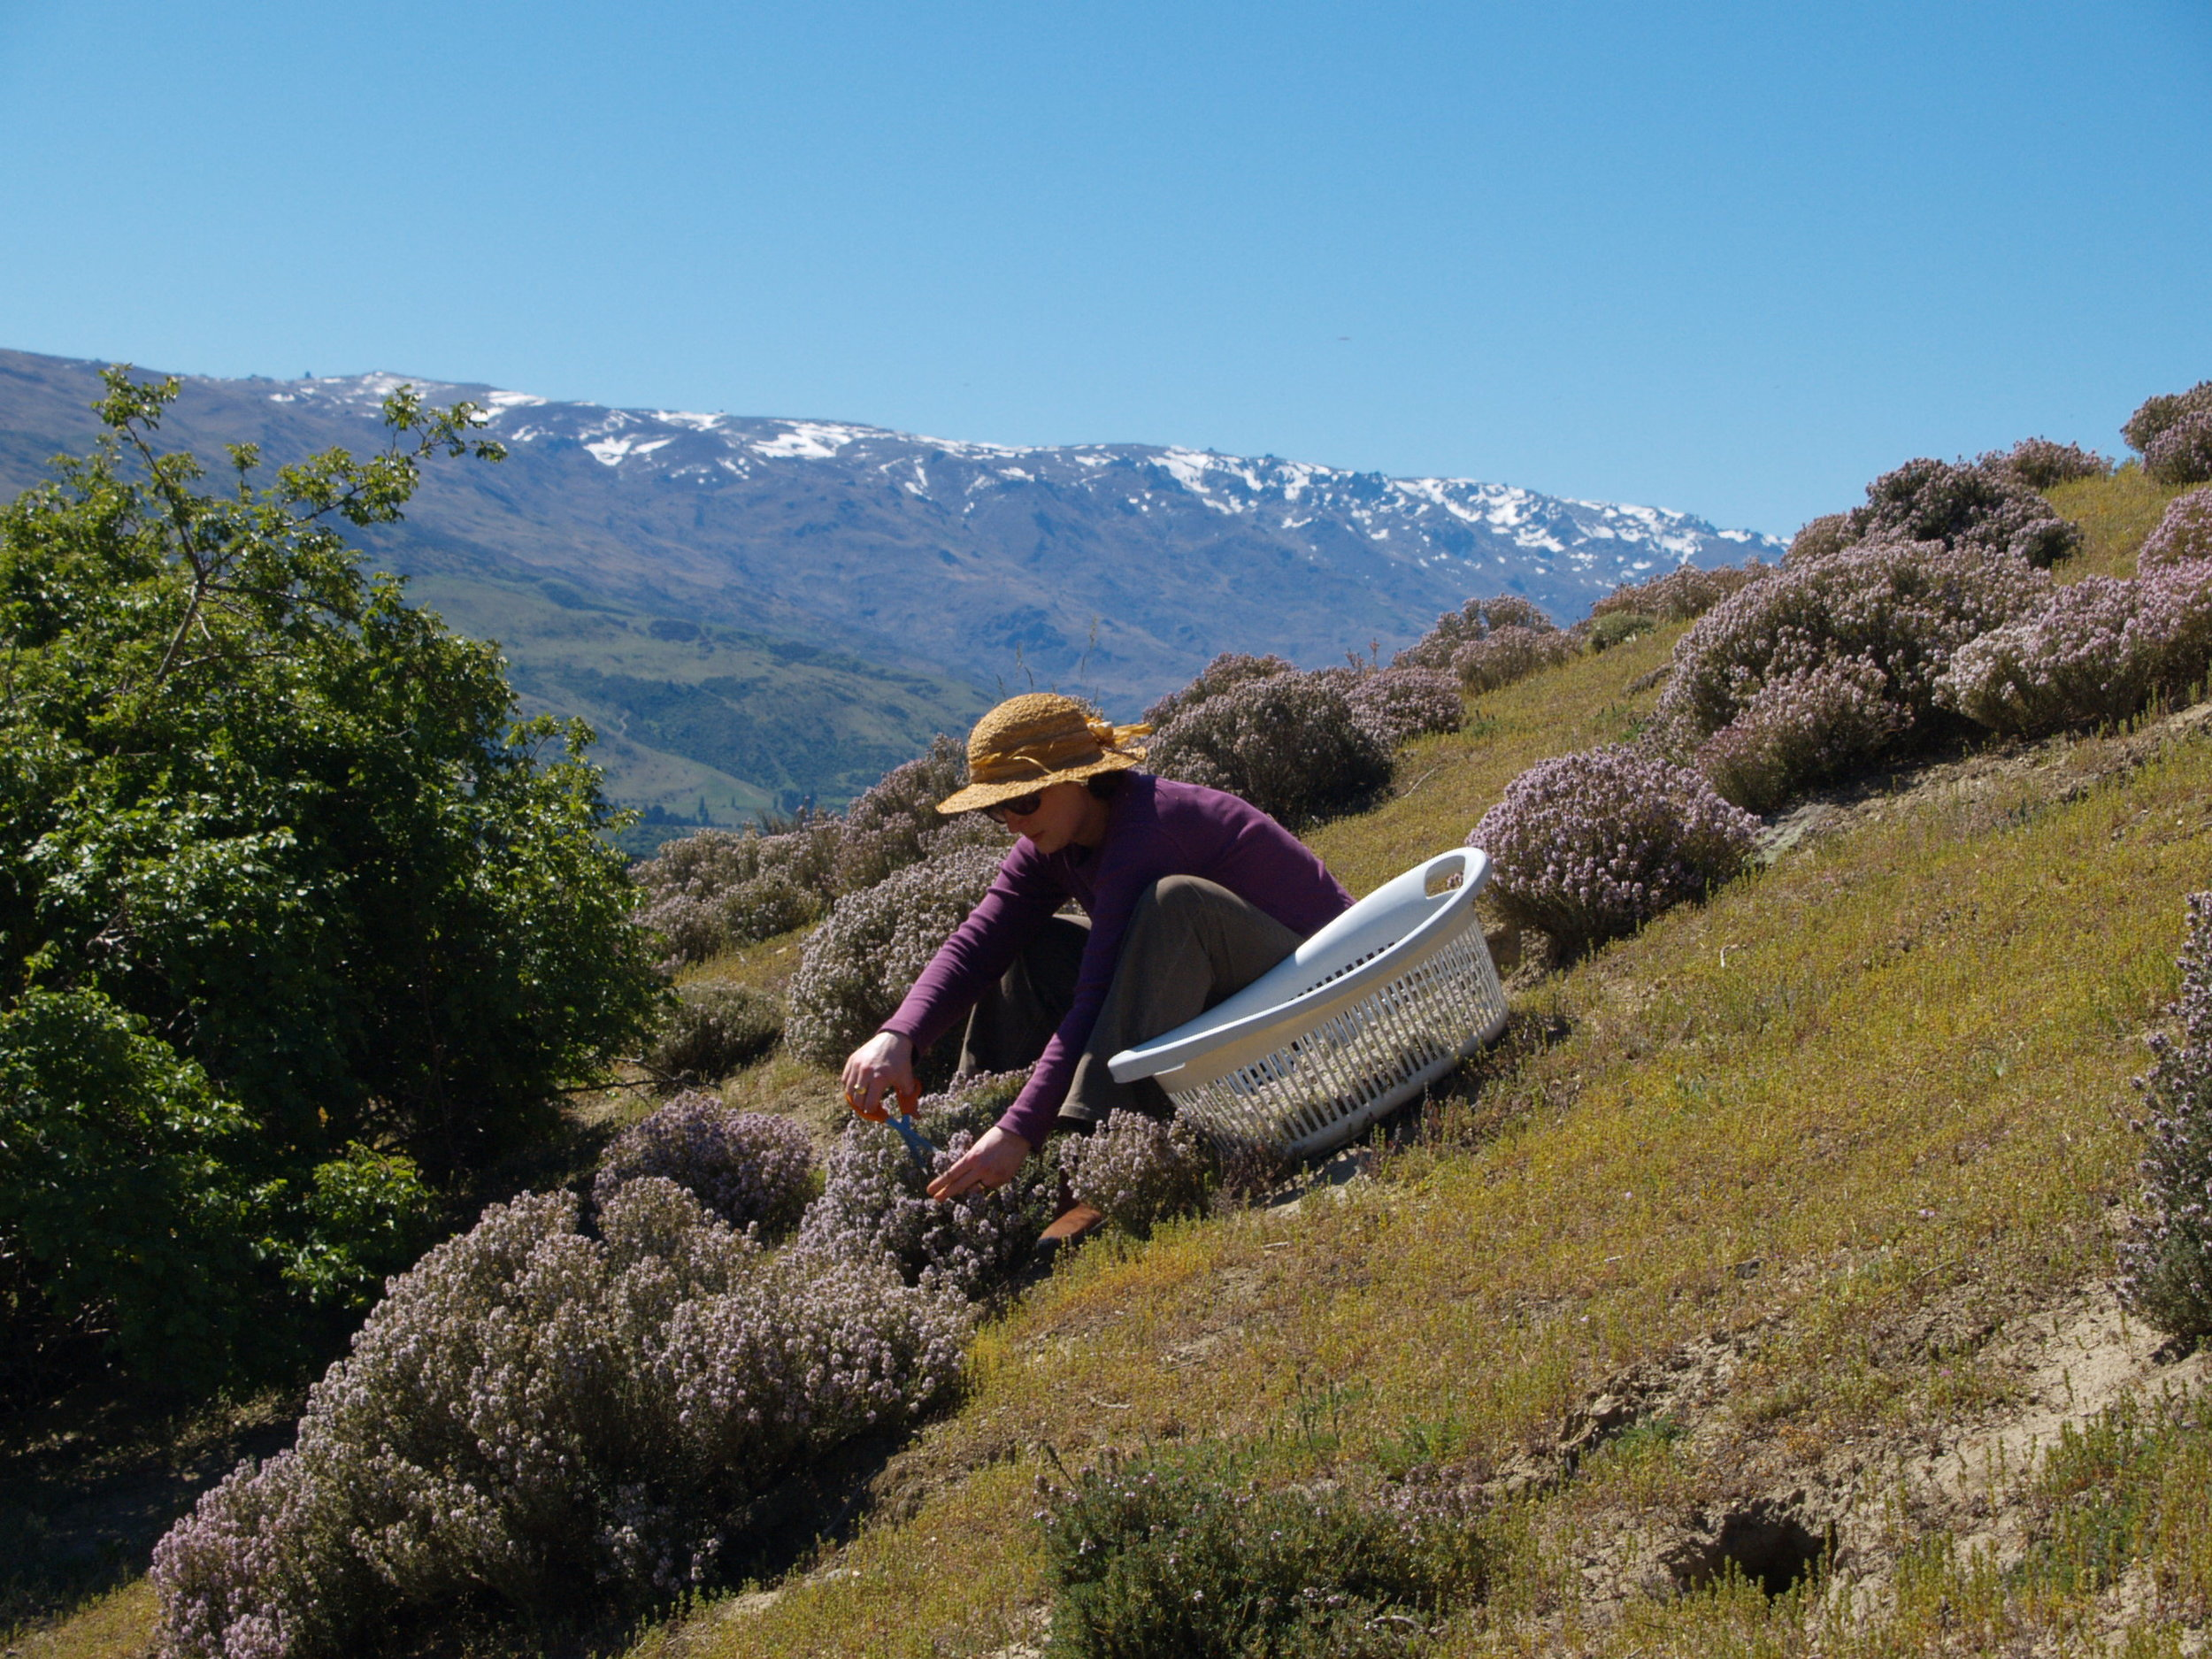 Sandra Clair harvesting wild thyme in Central Otago